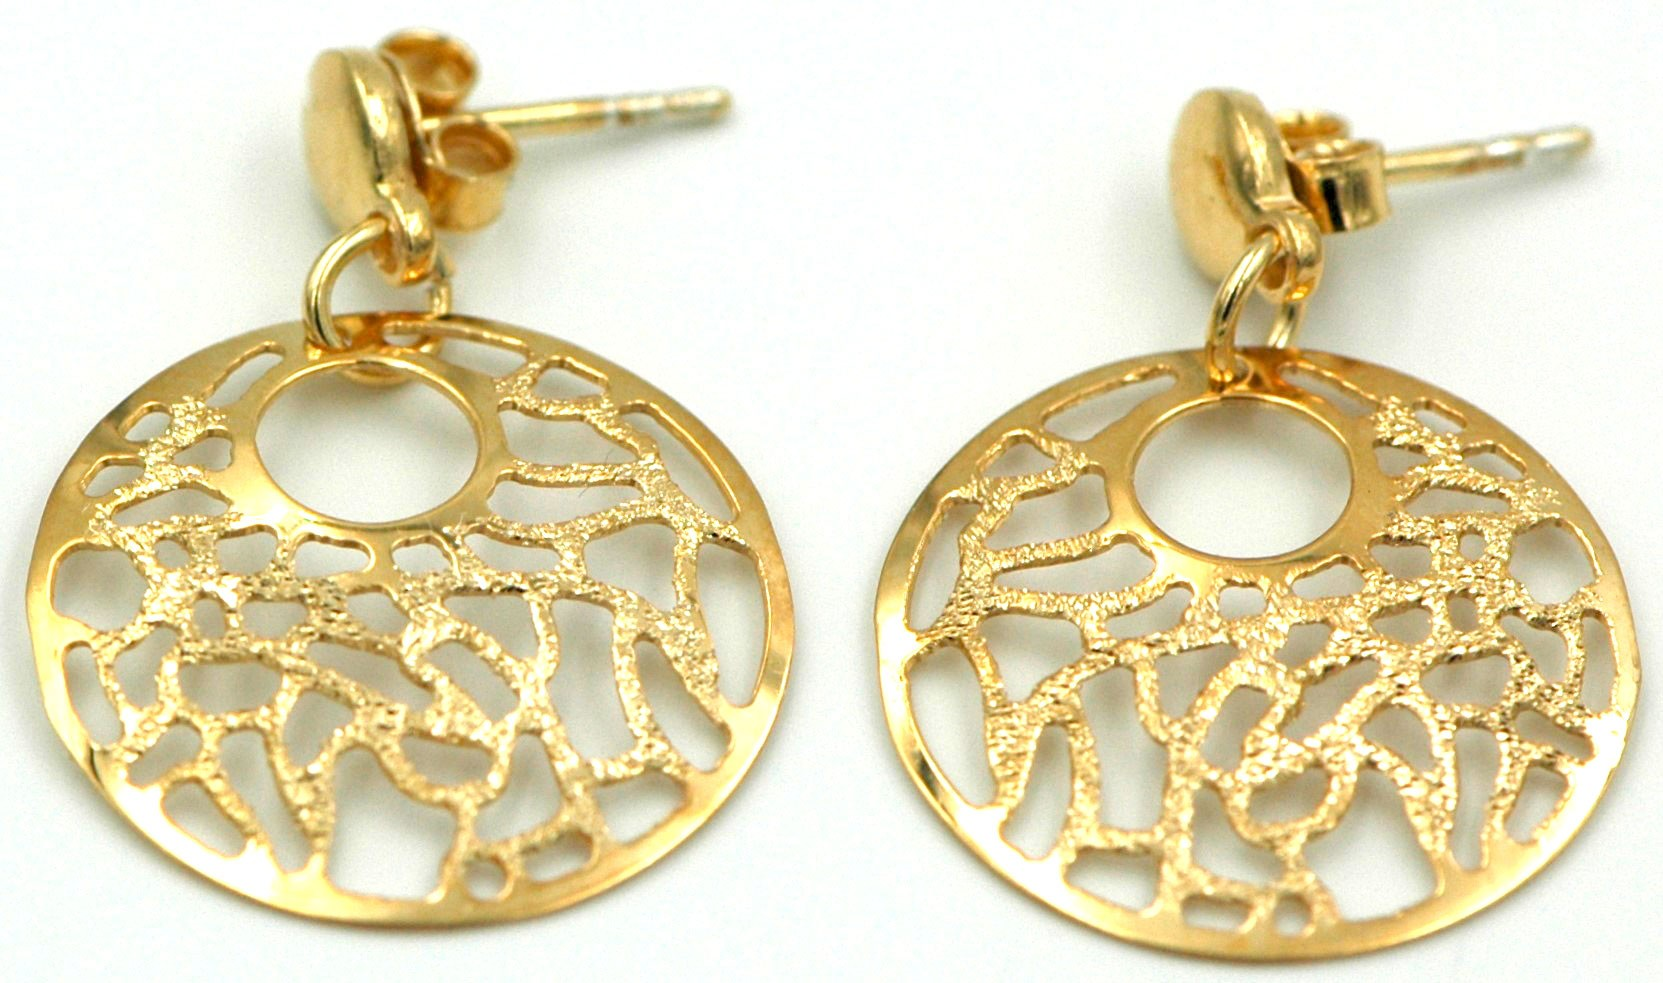 plated gold earrings mujajuma goldplated earring copy juma en muja